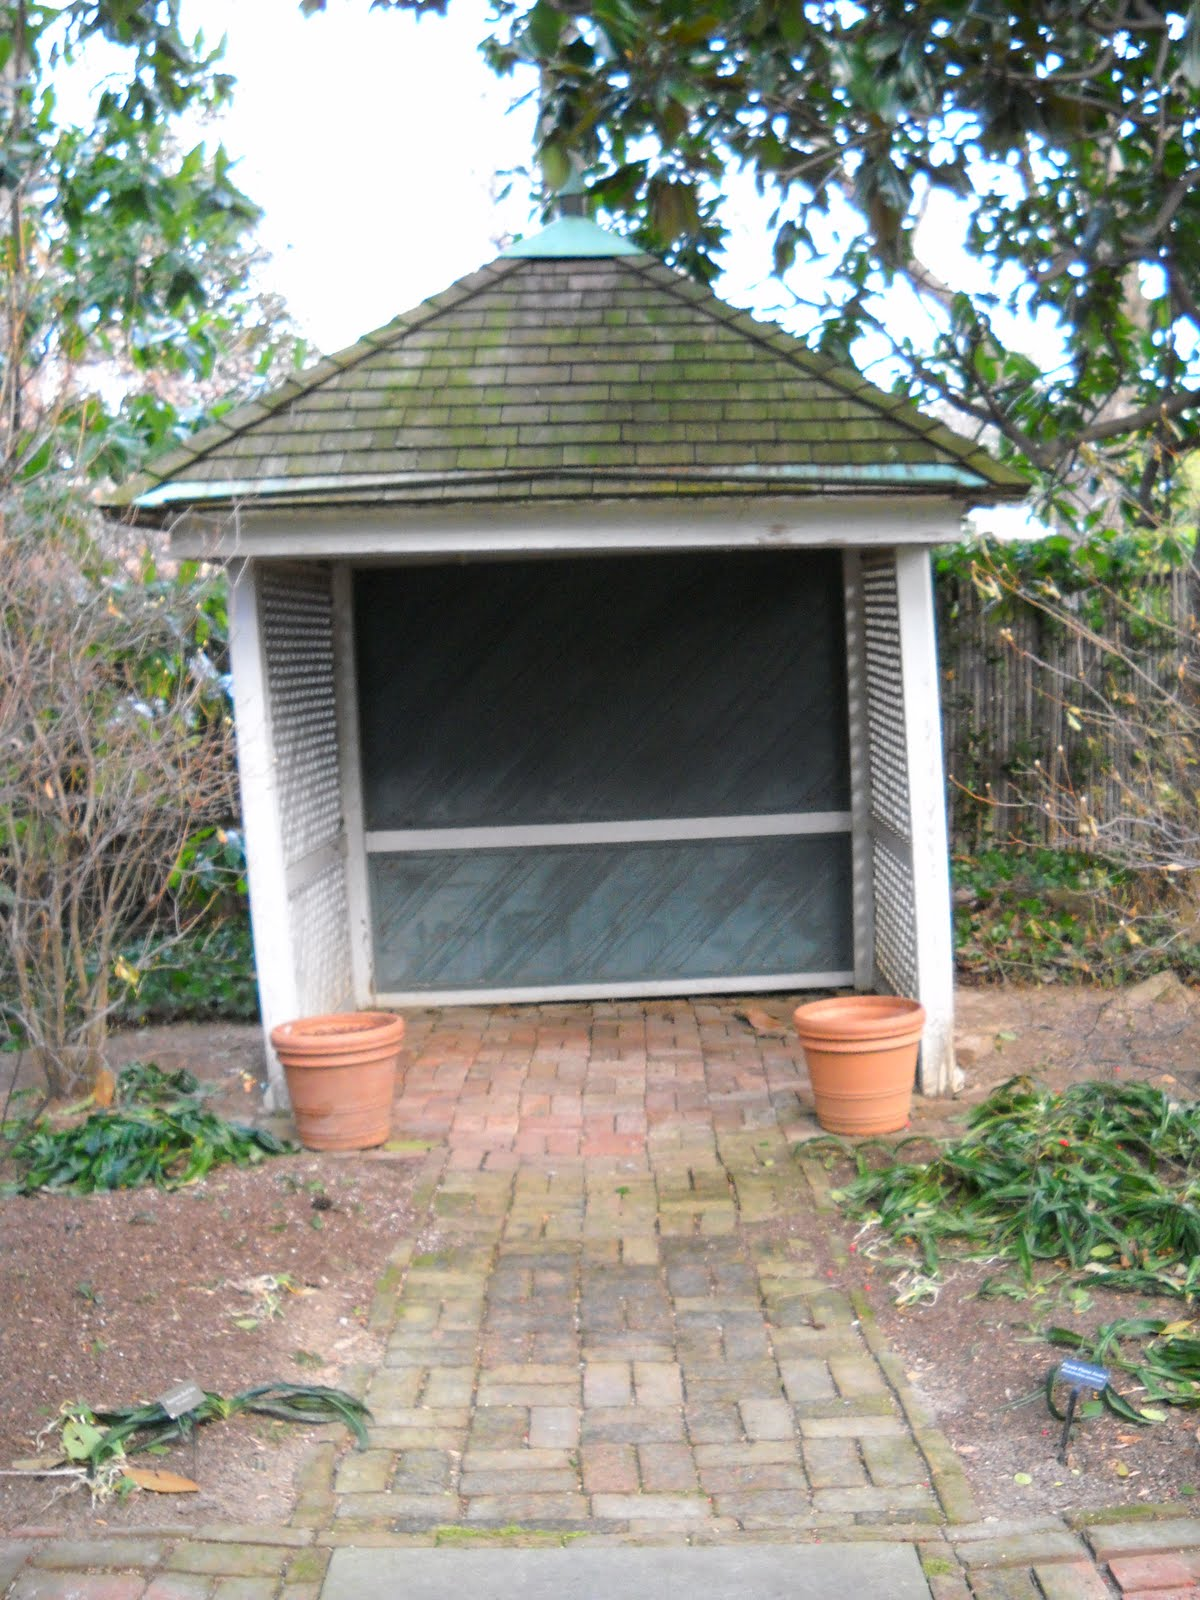 Preserving an american treasure september 2010 for Small garden shelter